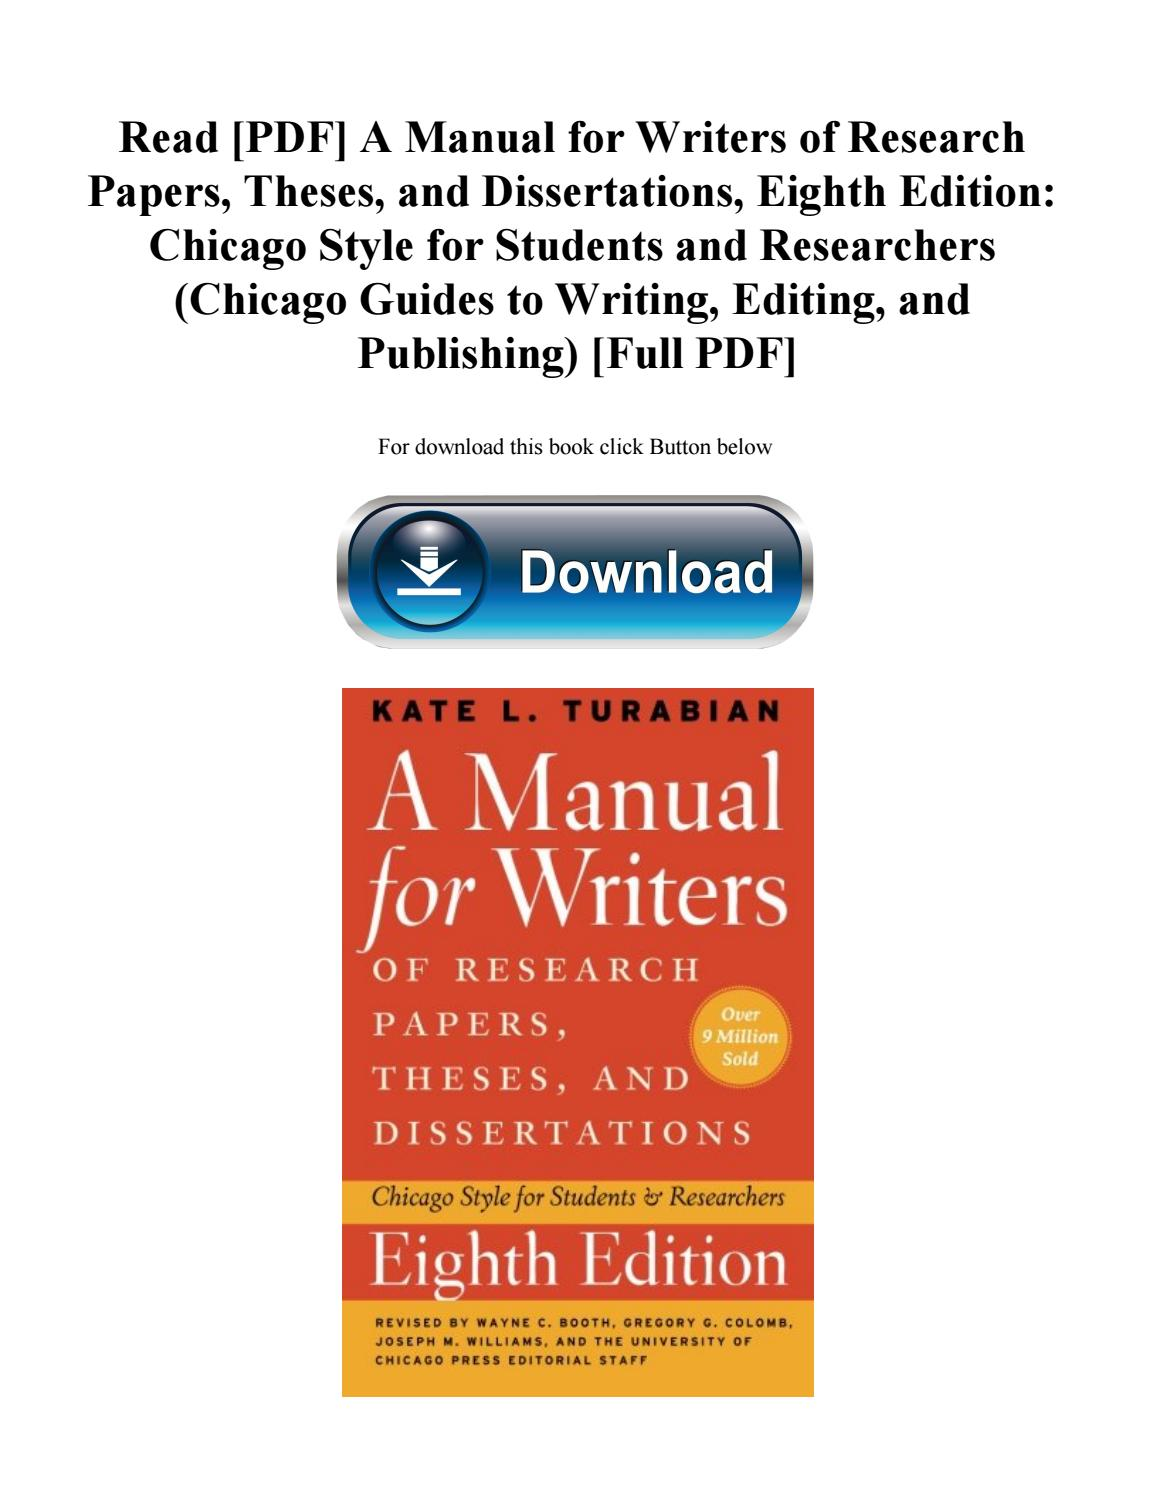 004 Manual For Writers Of Researchs Theses And Dissertations 8th Edition Pdf Page 1 Magnificent A Research Papers Full